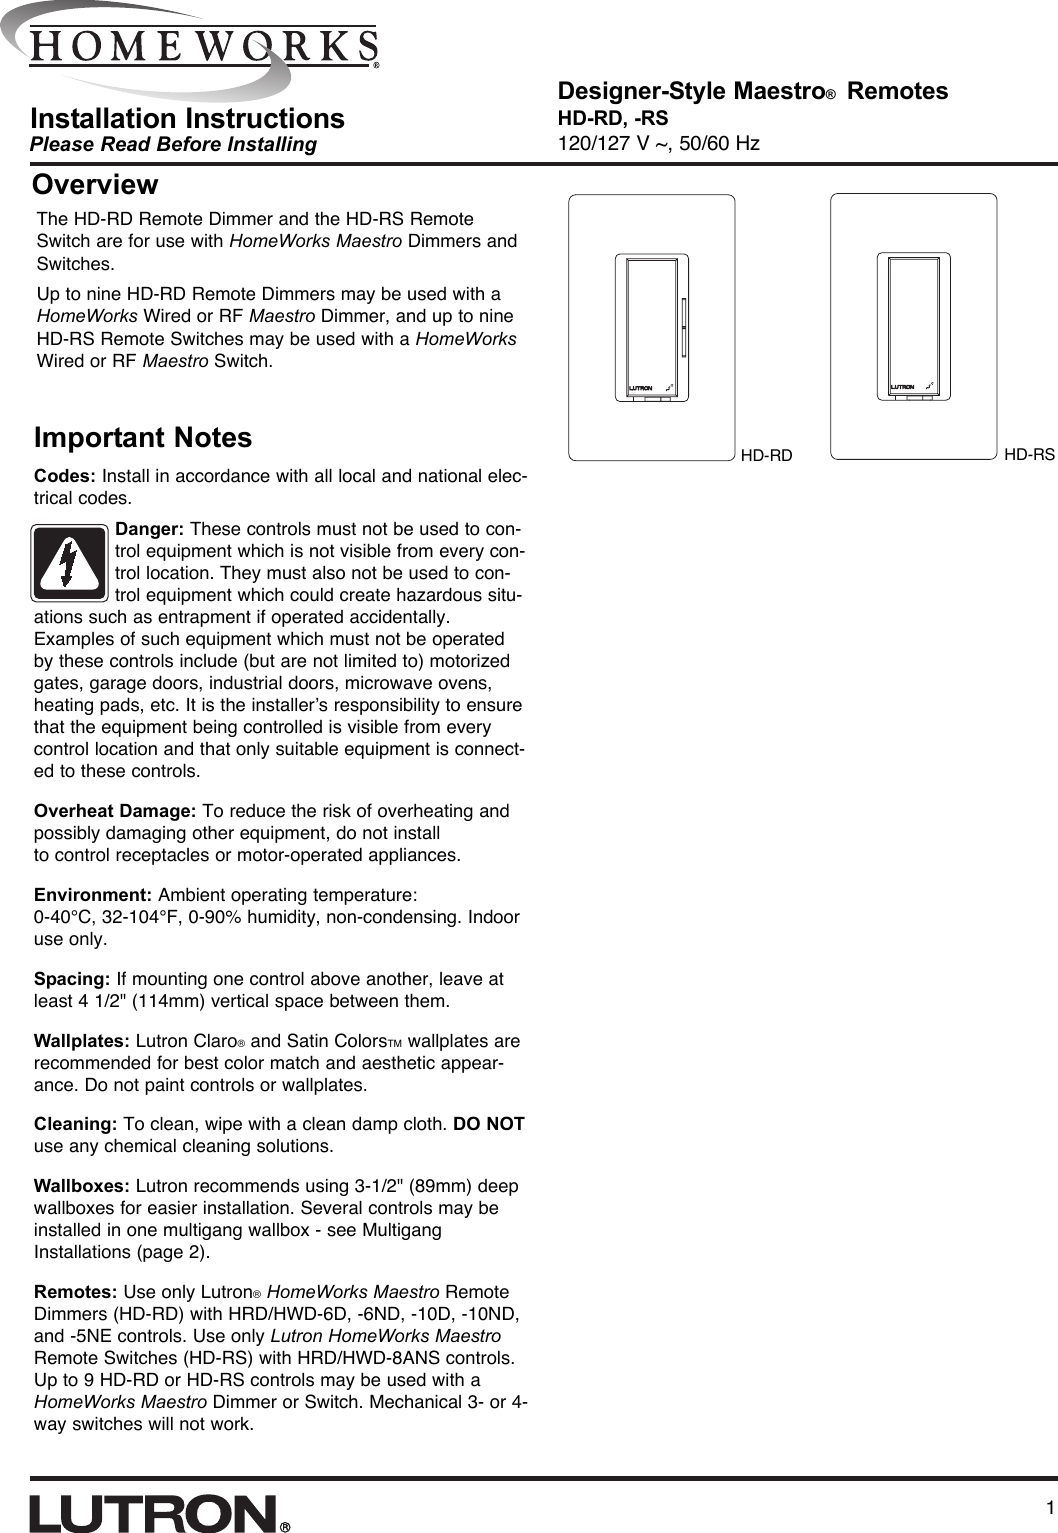 Amx Hd Rd Users Manual 043 134a Lutron Homeworks Wiring Diagram